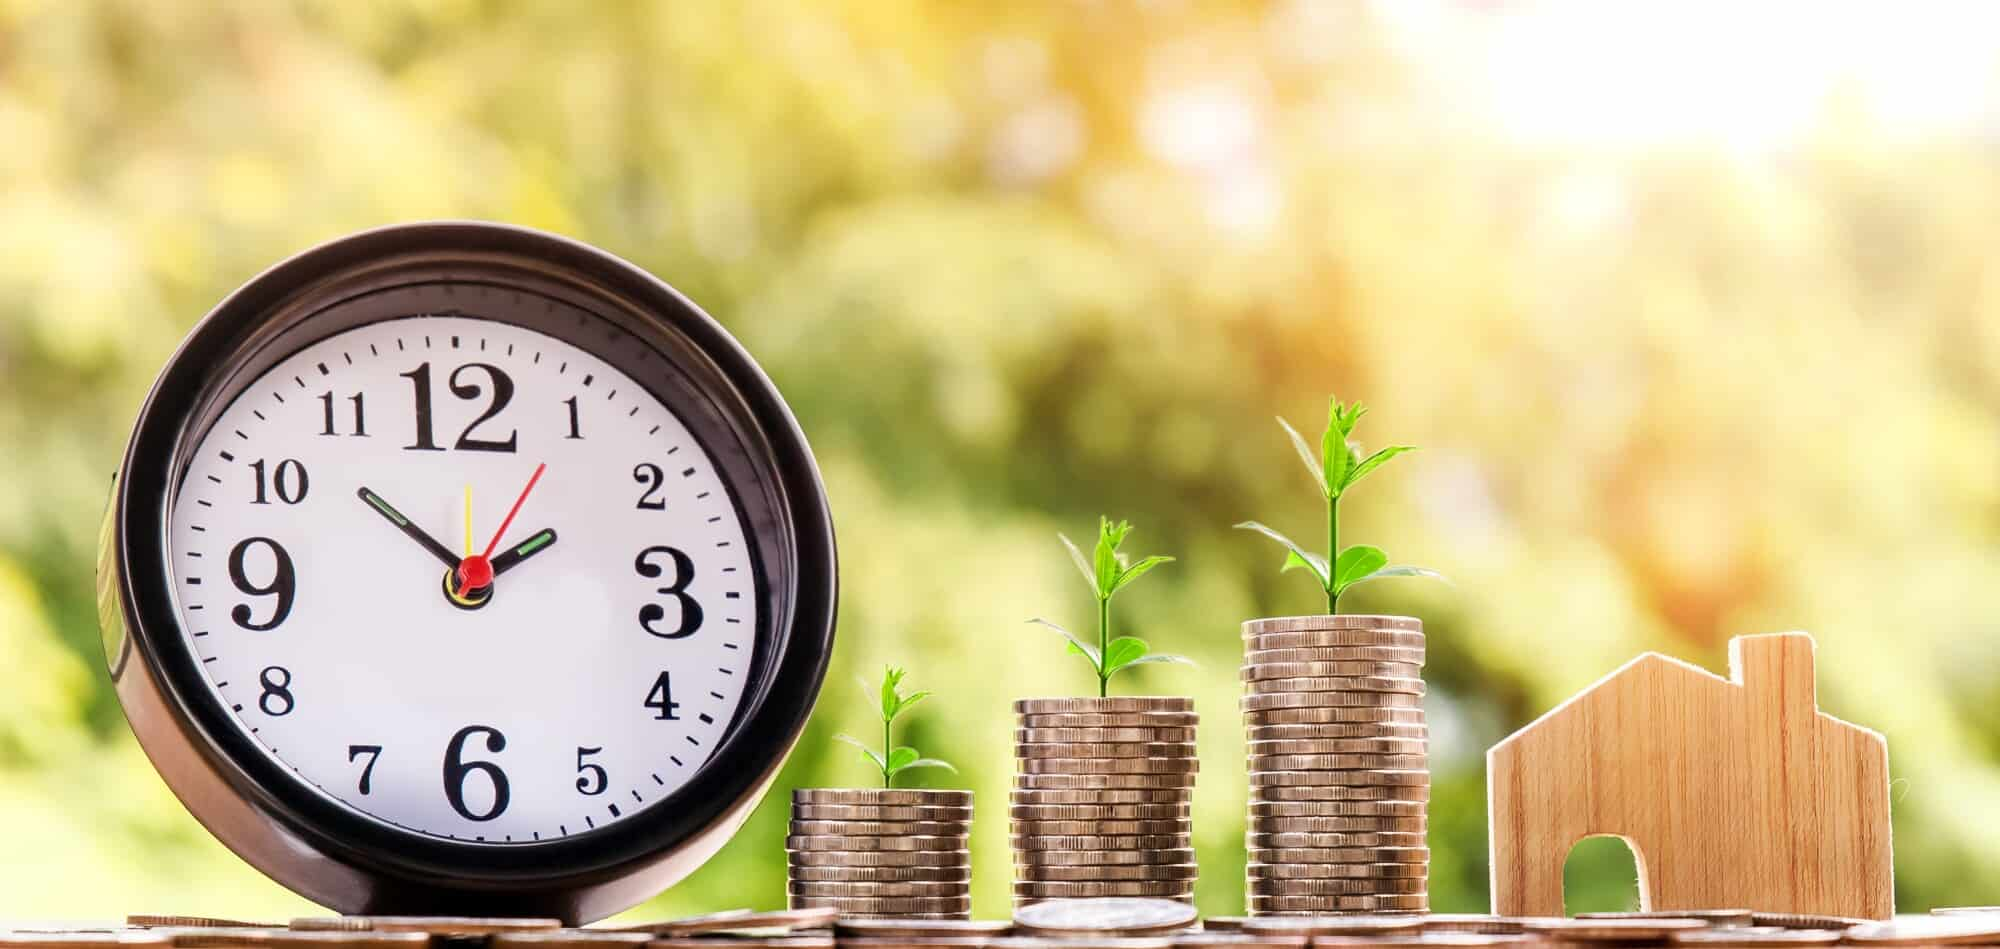 Mortgage Penalty: How Early Can You Renew Your Mortgage?